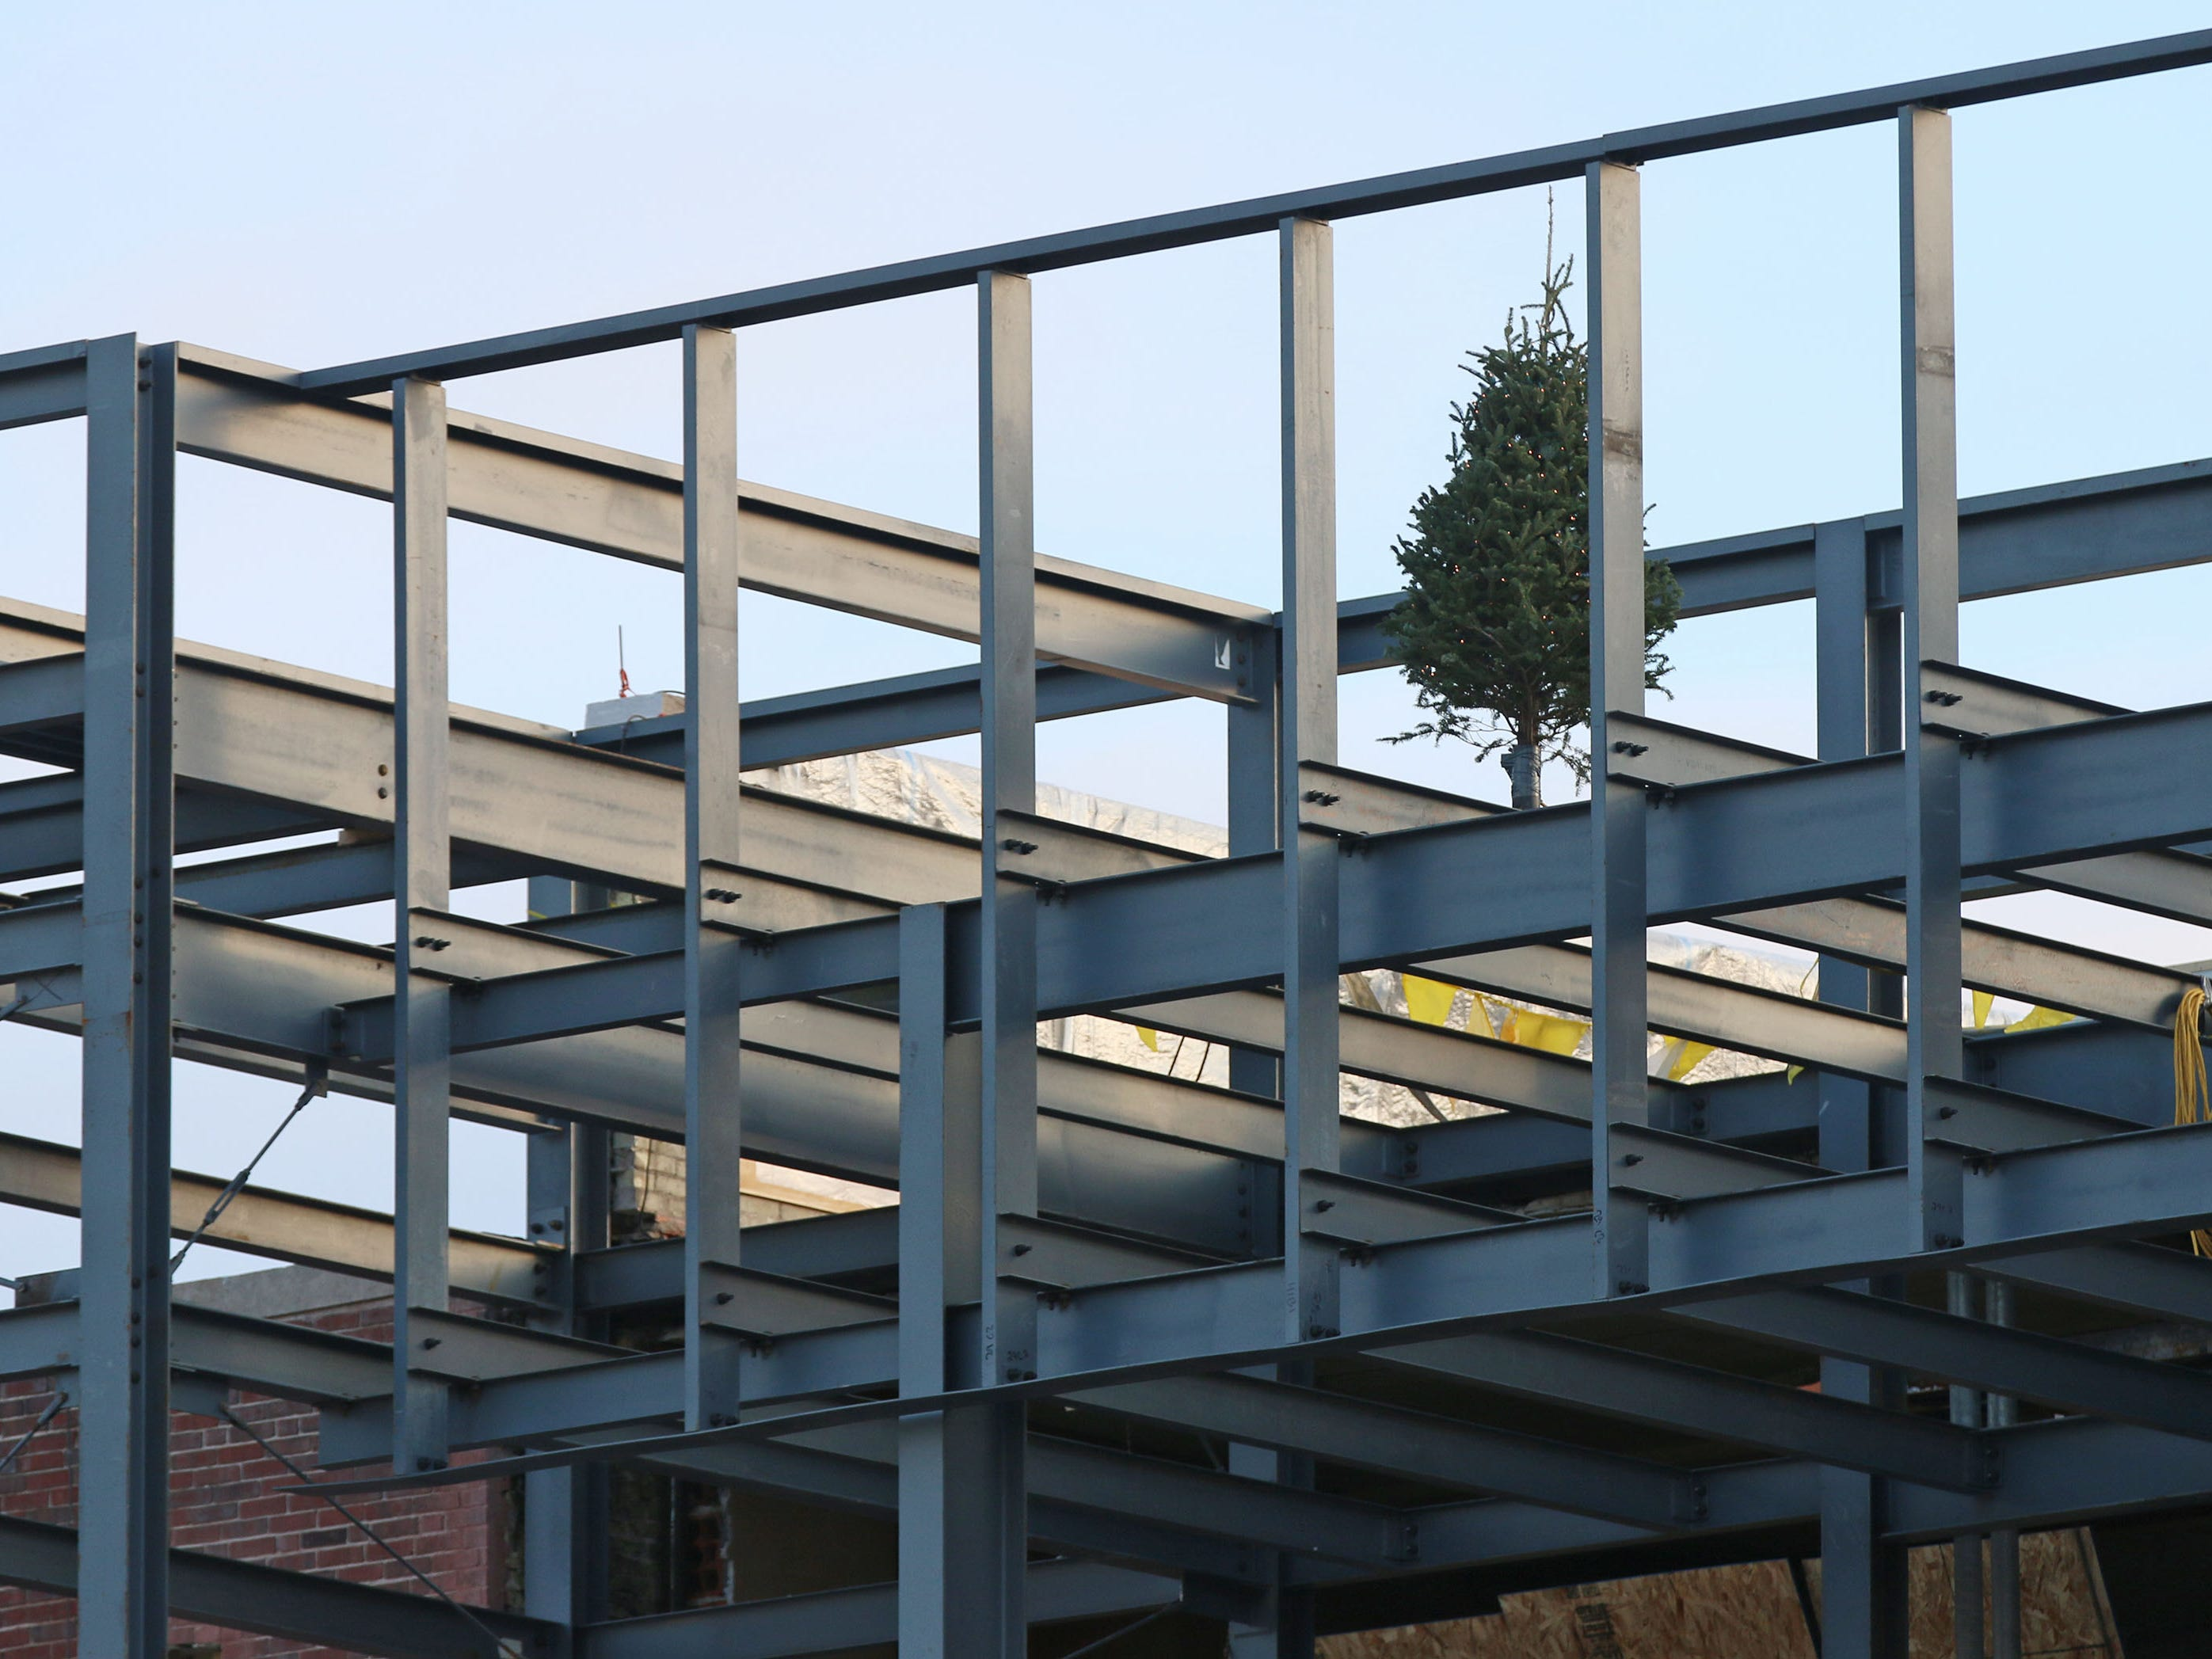 A Christmas tree is secured to a beam atop the Sheboygan City Hall, Wednesday, December 5, 2018, in Sheboygan, Wis. A topping off ceremony was held Wednesday in honor of the installation of the last structural beam for the 10.5 million dollar city hall renovation project.